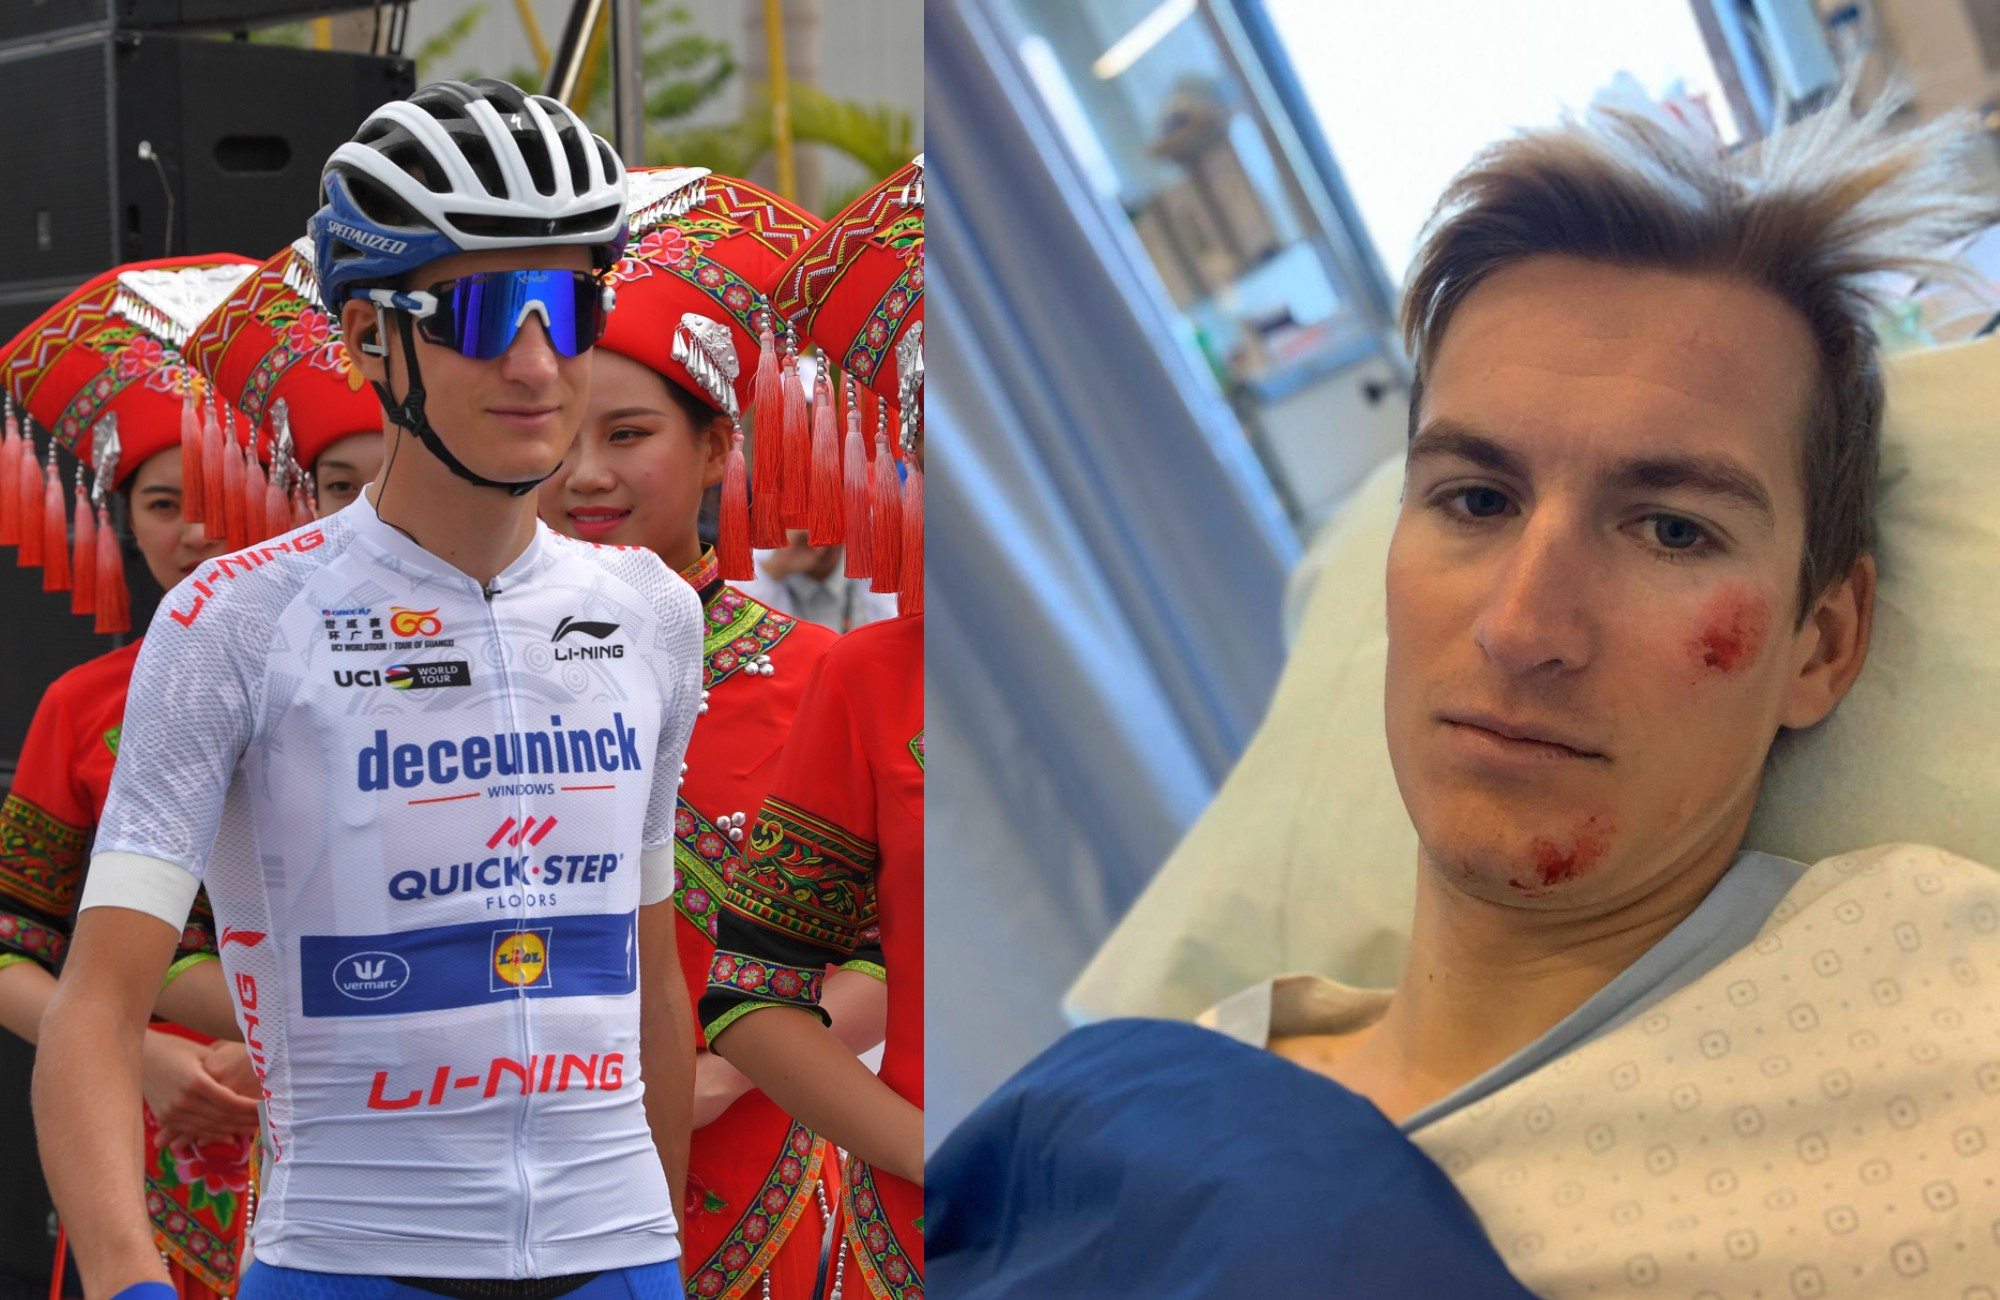 Deceuninck – Quick-Step's Mikkel Honoré 'feeling fortunate' after hit and run during training ride